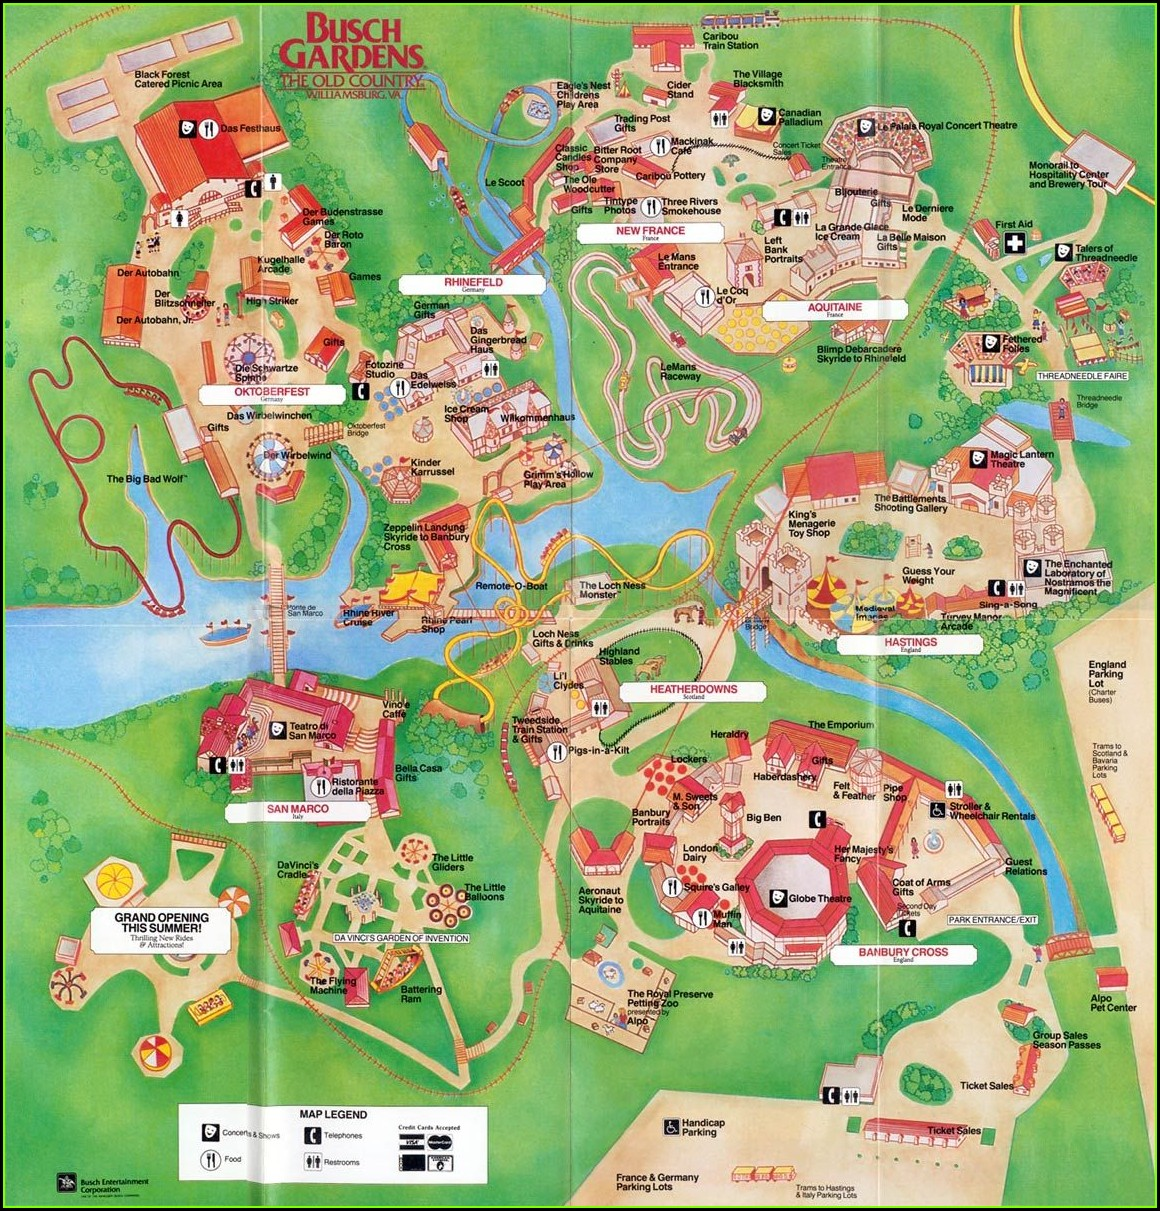 Busch Gardens Williamsburg Map 2017